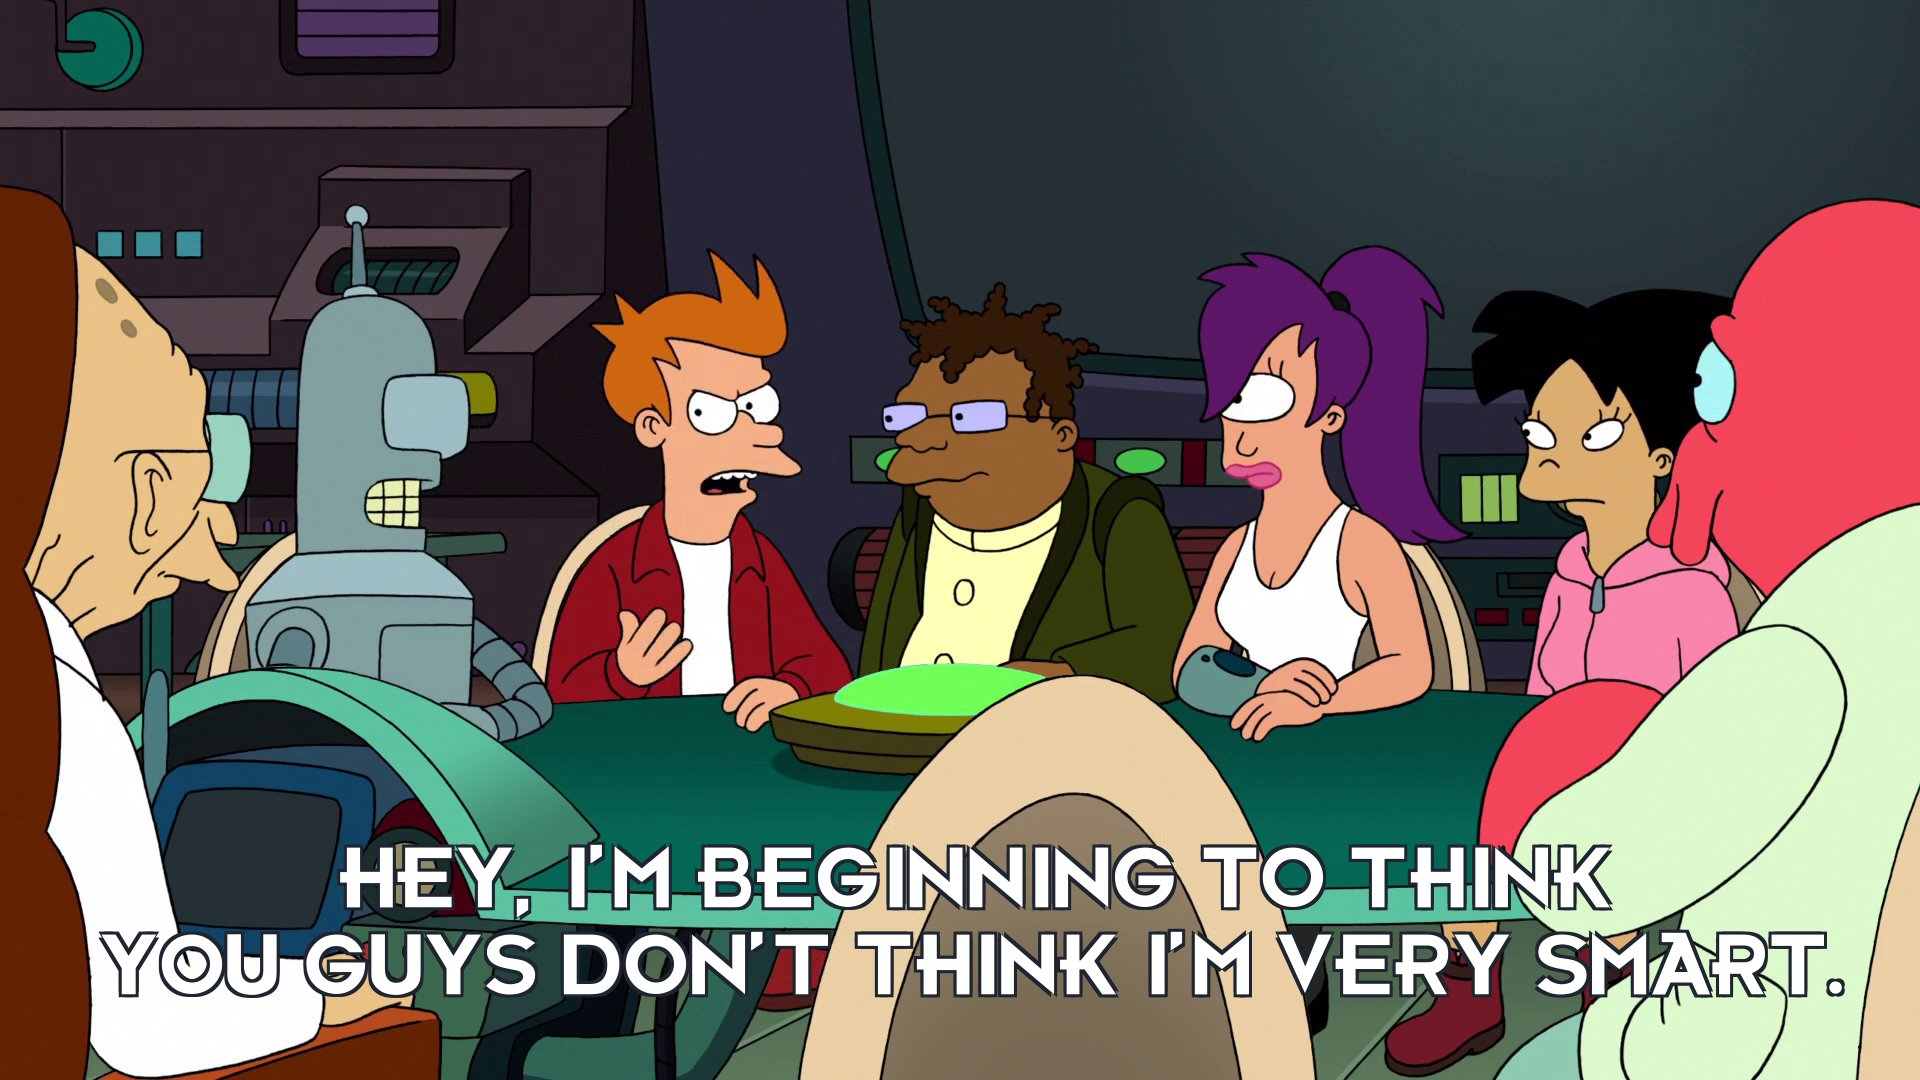 Philip J Fry: Hey, I'm beginning to think you guys don't think I'm very smart.